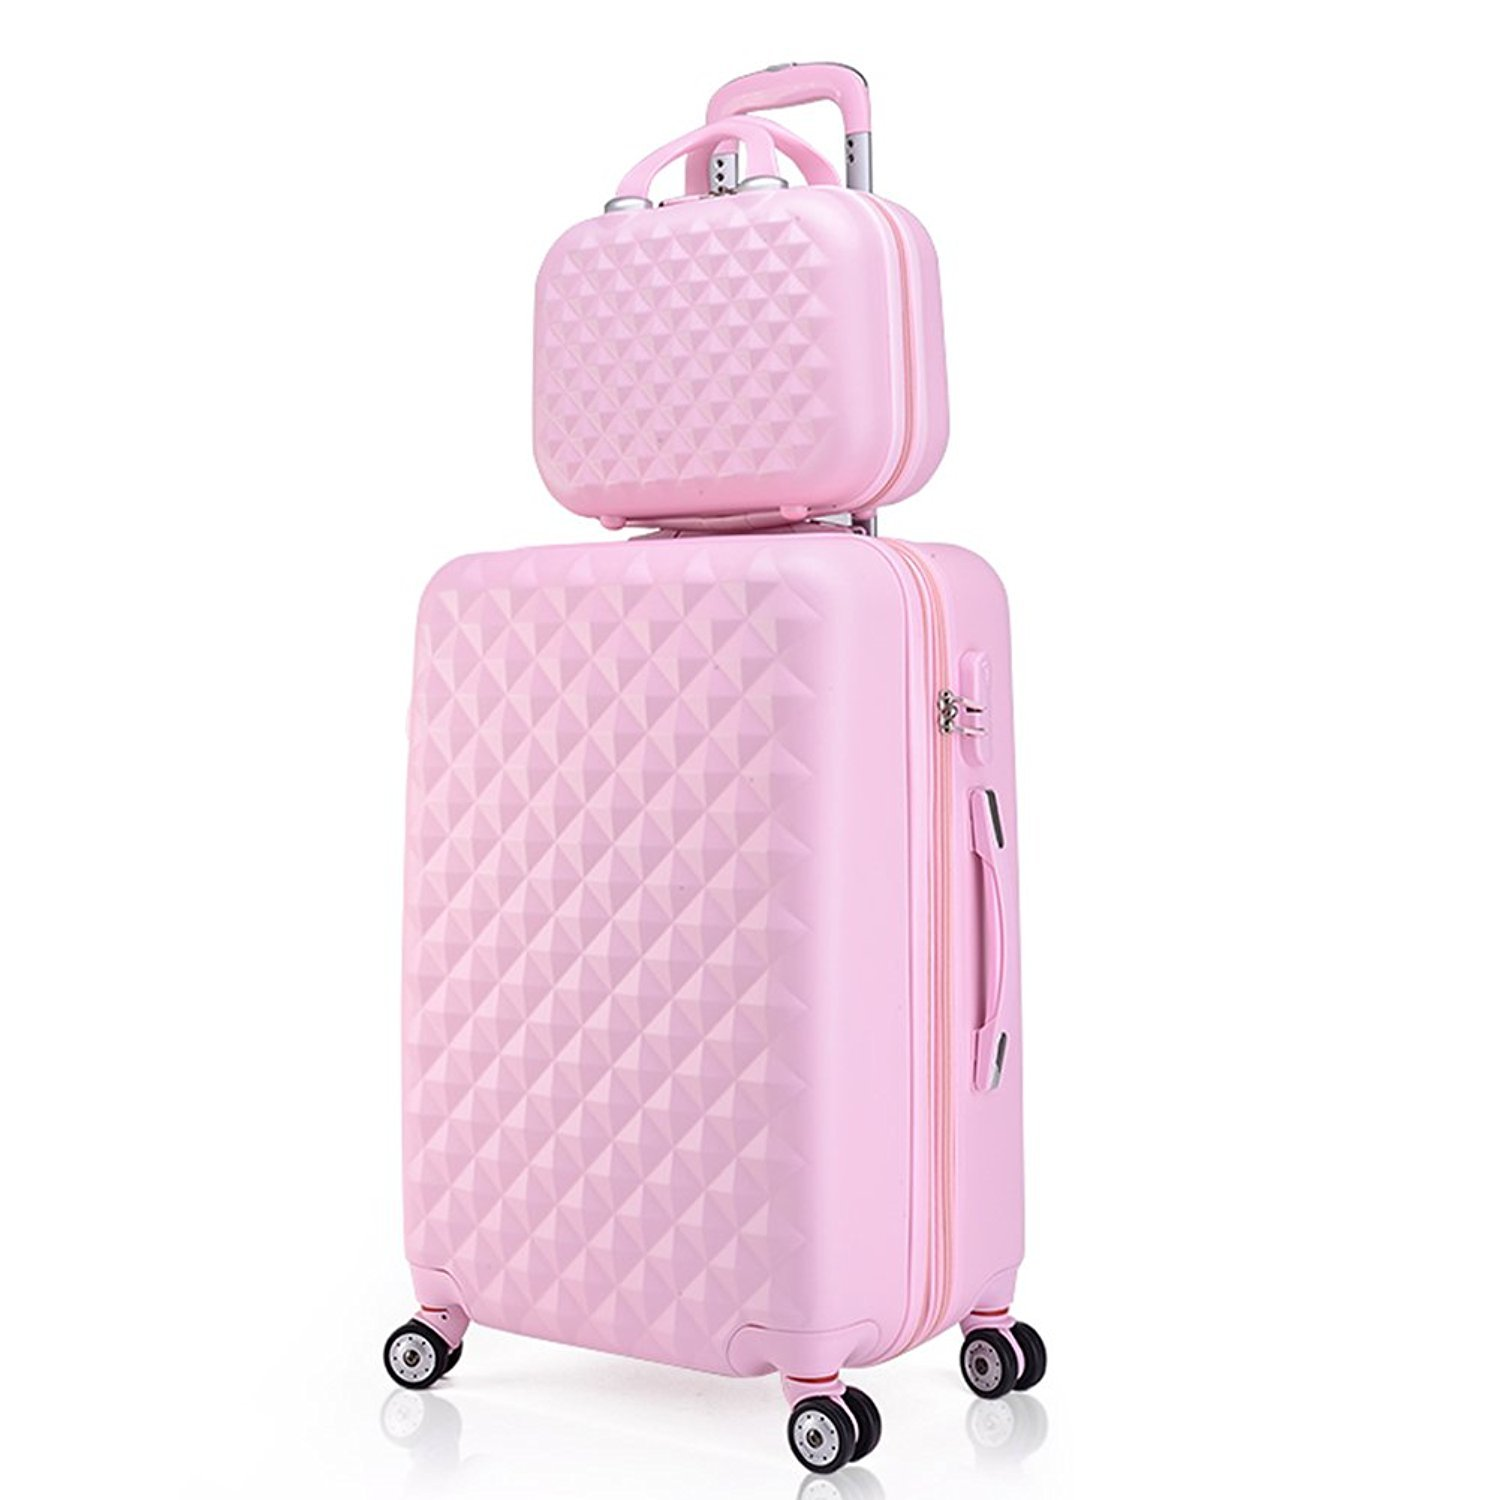 a4451bee247b Travelers Choice Travel Select Luggage Amsterdam Two-Piece Carry-On Luggage  Set